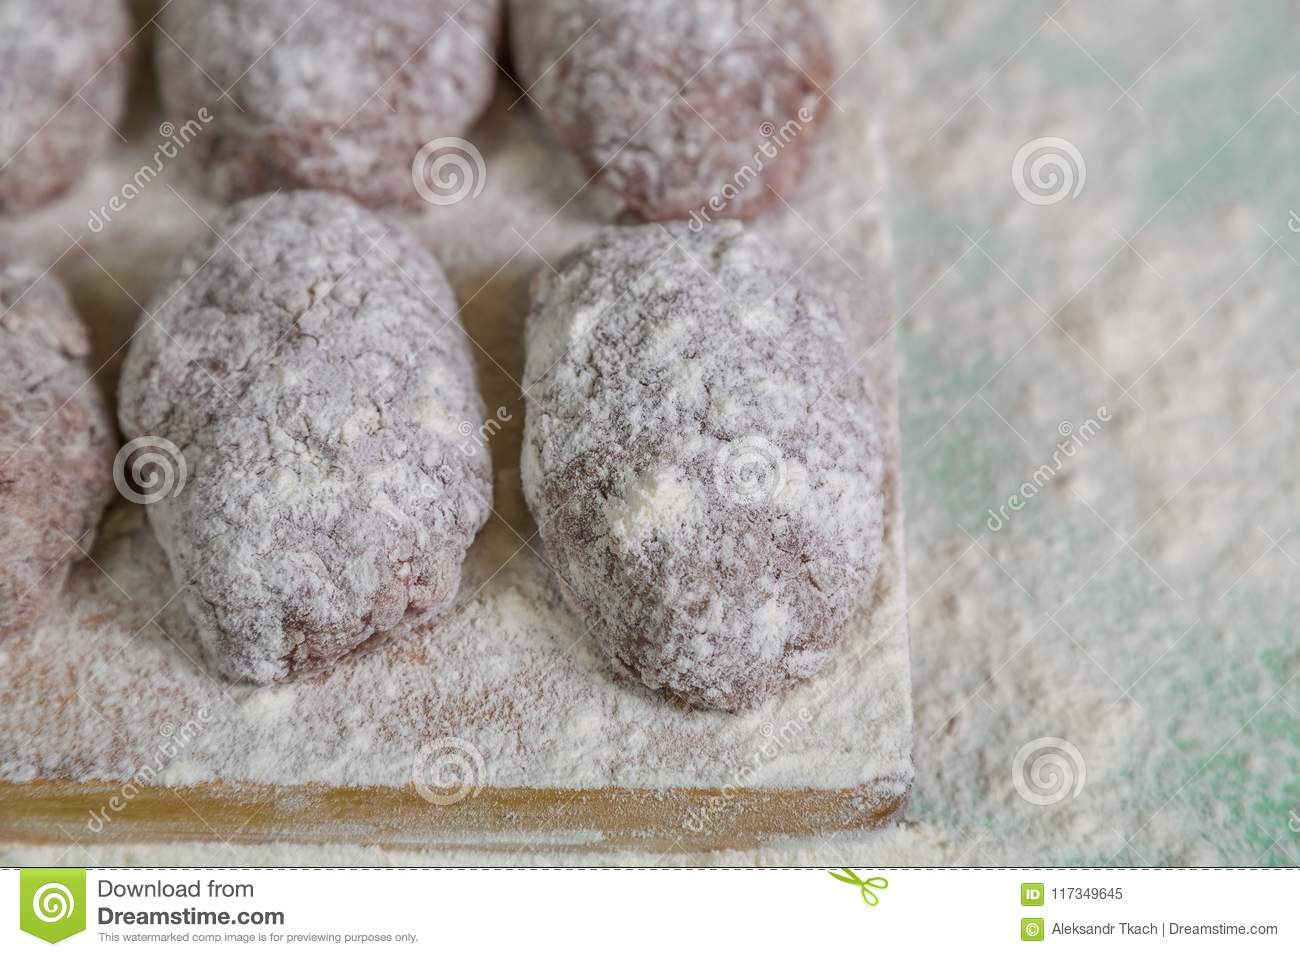 Homemade meatballs in flour on cutting Board prepared for roasting